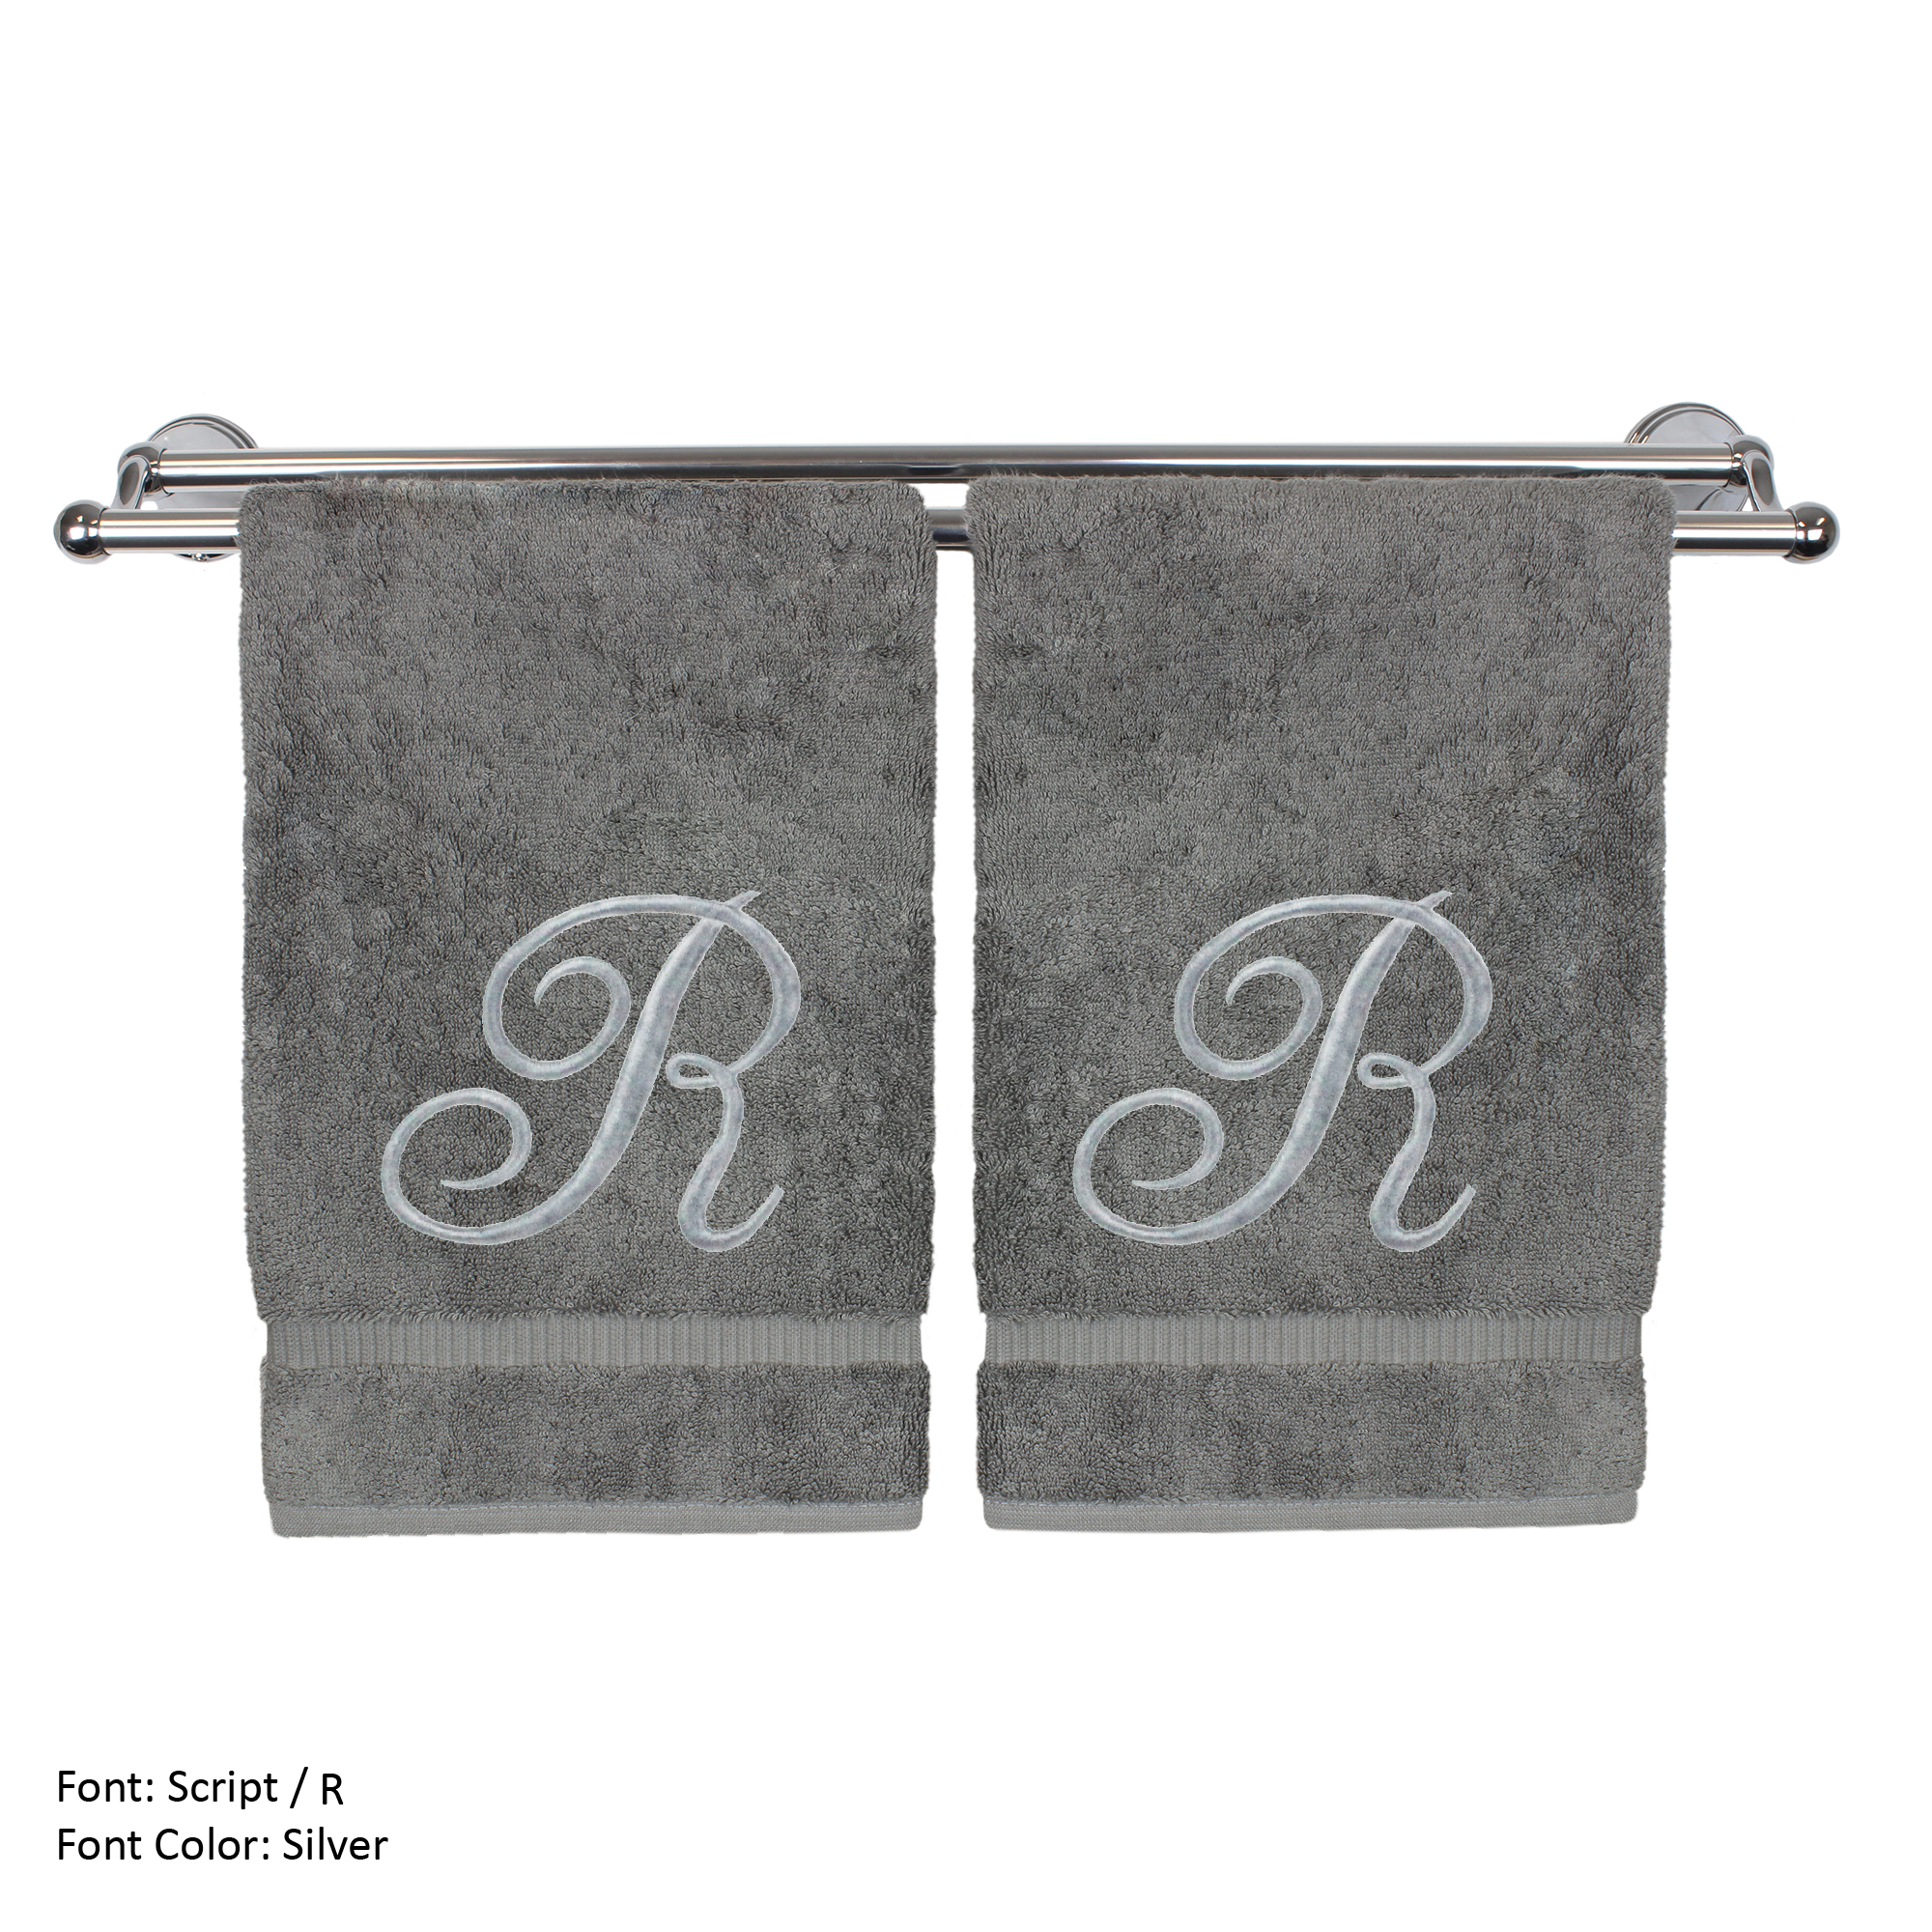 Monogrammed Washcloth Towel, Personalized Gift, 13x13 Inches - Set of 2 - Silver Script Embroidered Towel - Extra Absorbent 100% Turkish Cotton - Soft Terry Finish - Initial R Gray